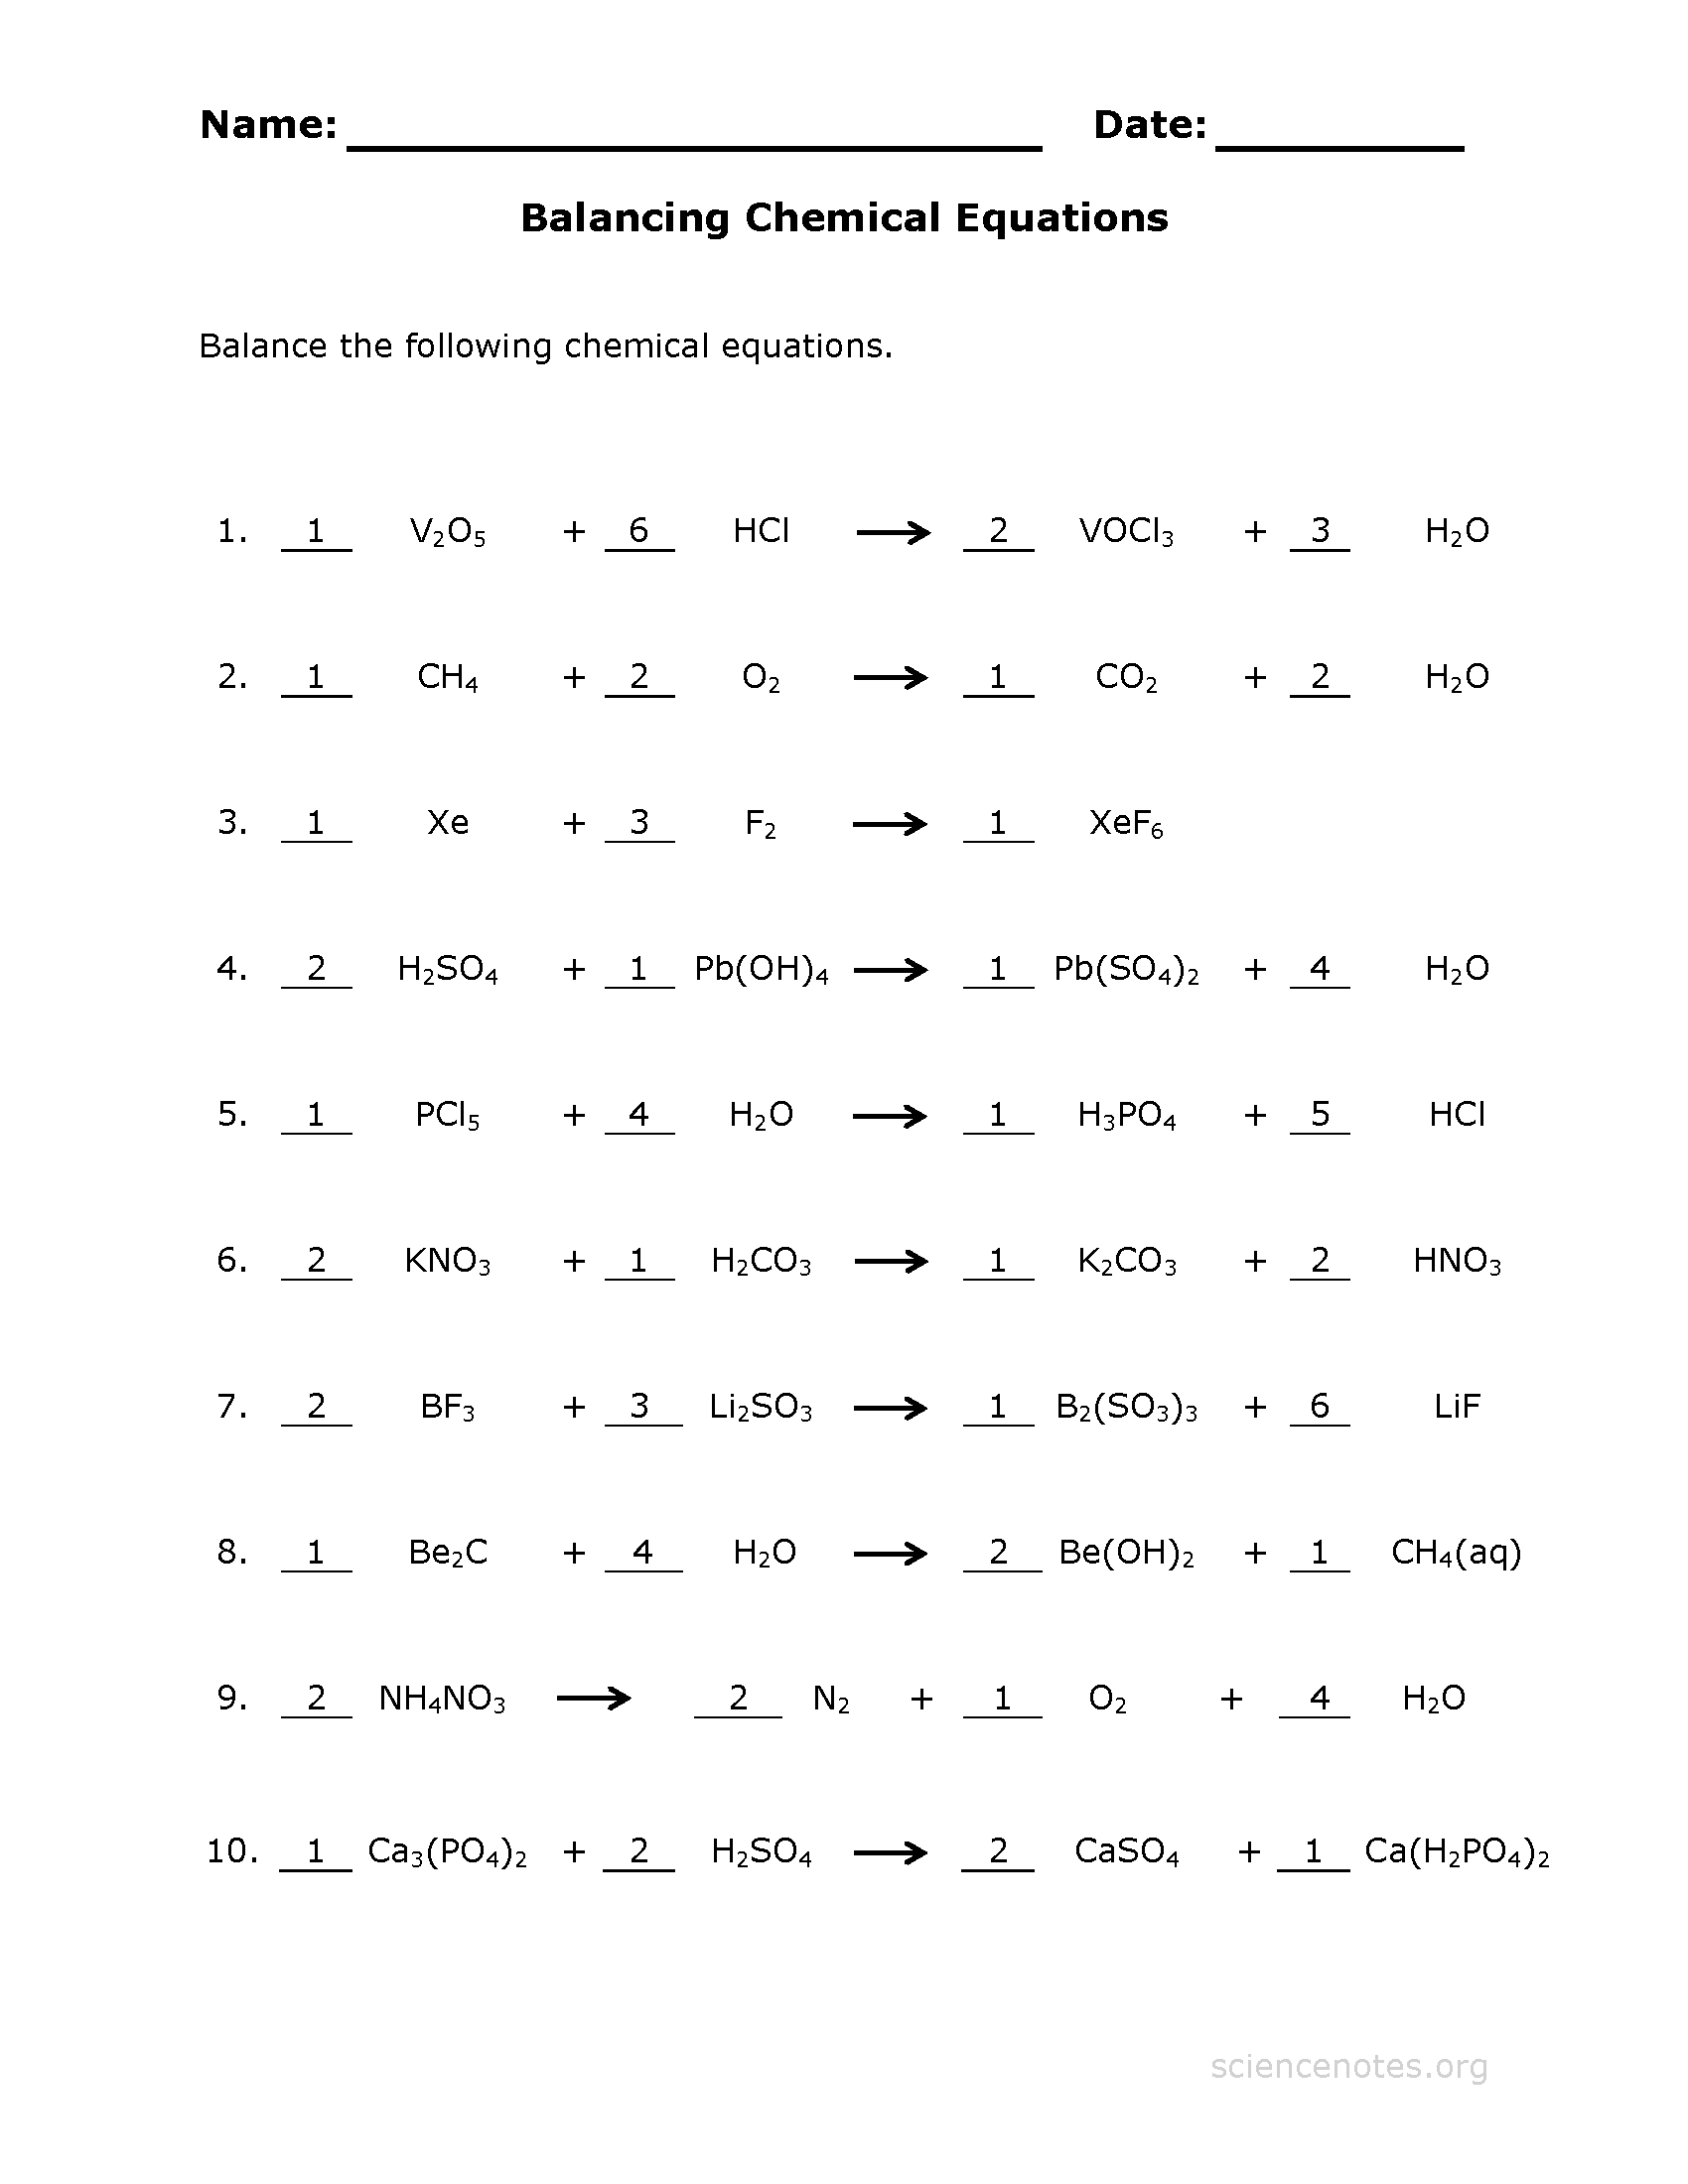 Balance Chemical Equations Worksheet 3 Answer Key Science Notes – Chemistry Balancing Chemical Equations Worksheet